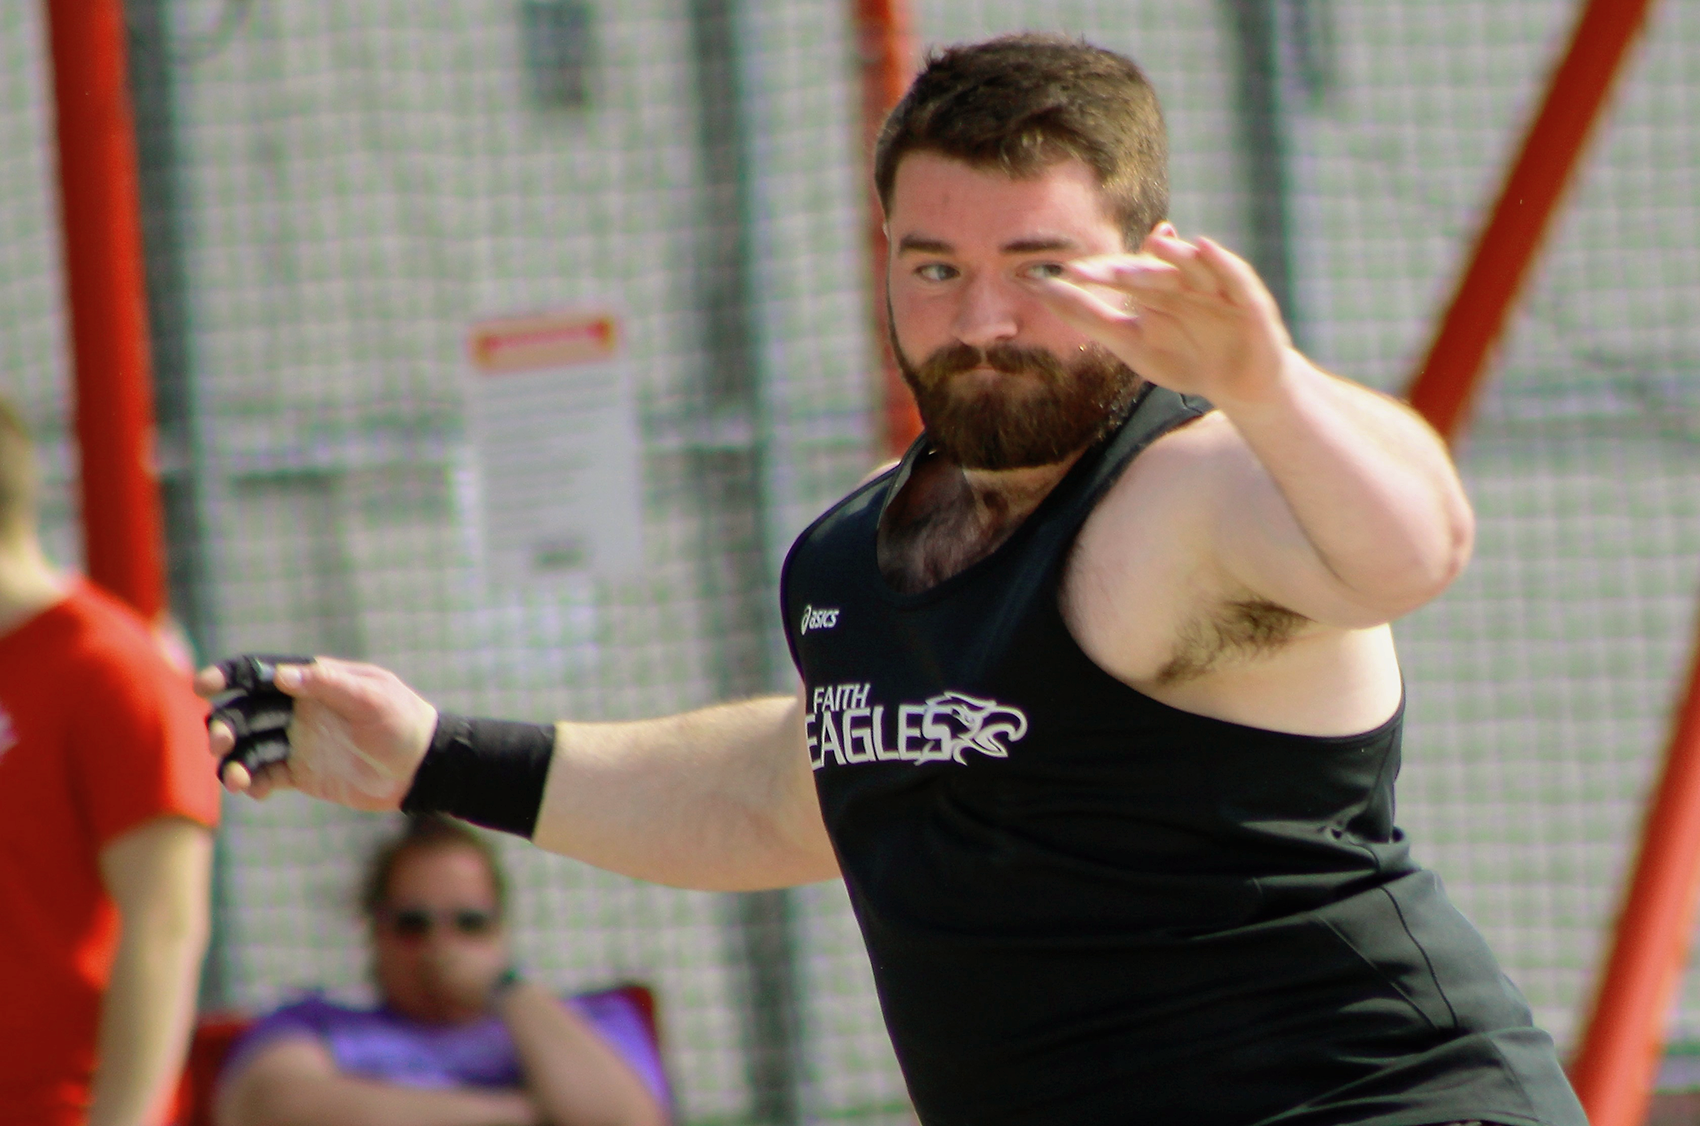 Jacob Kirkwood broke the Faith Eagles' school record with his discus throw of 46.95m